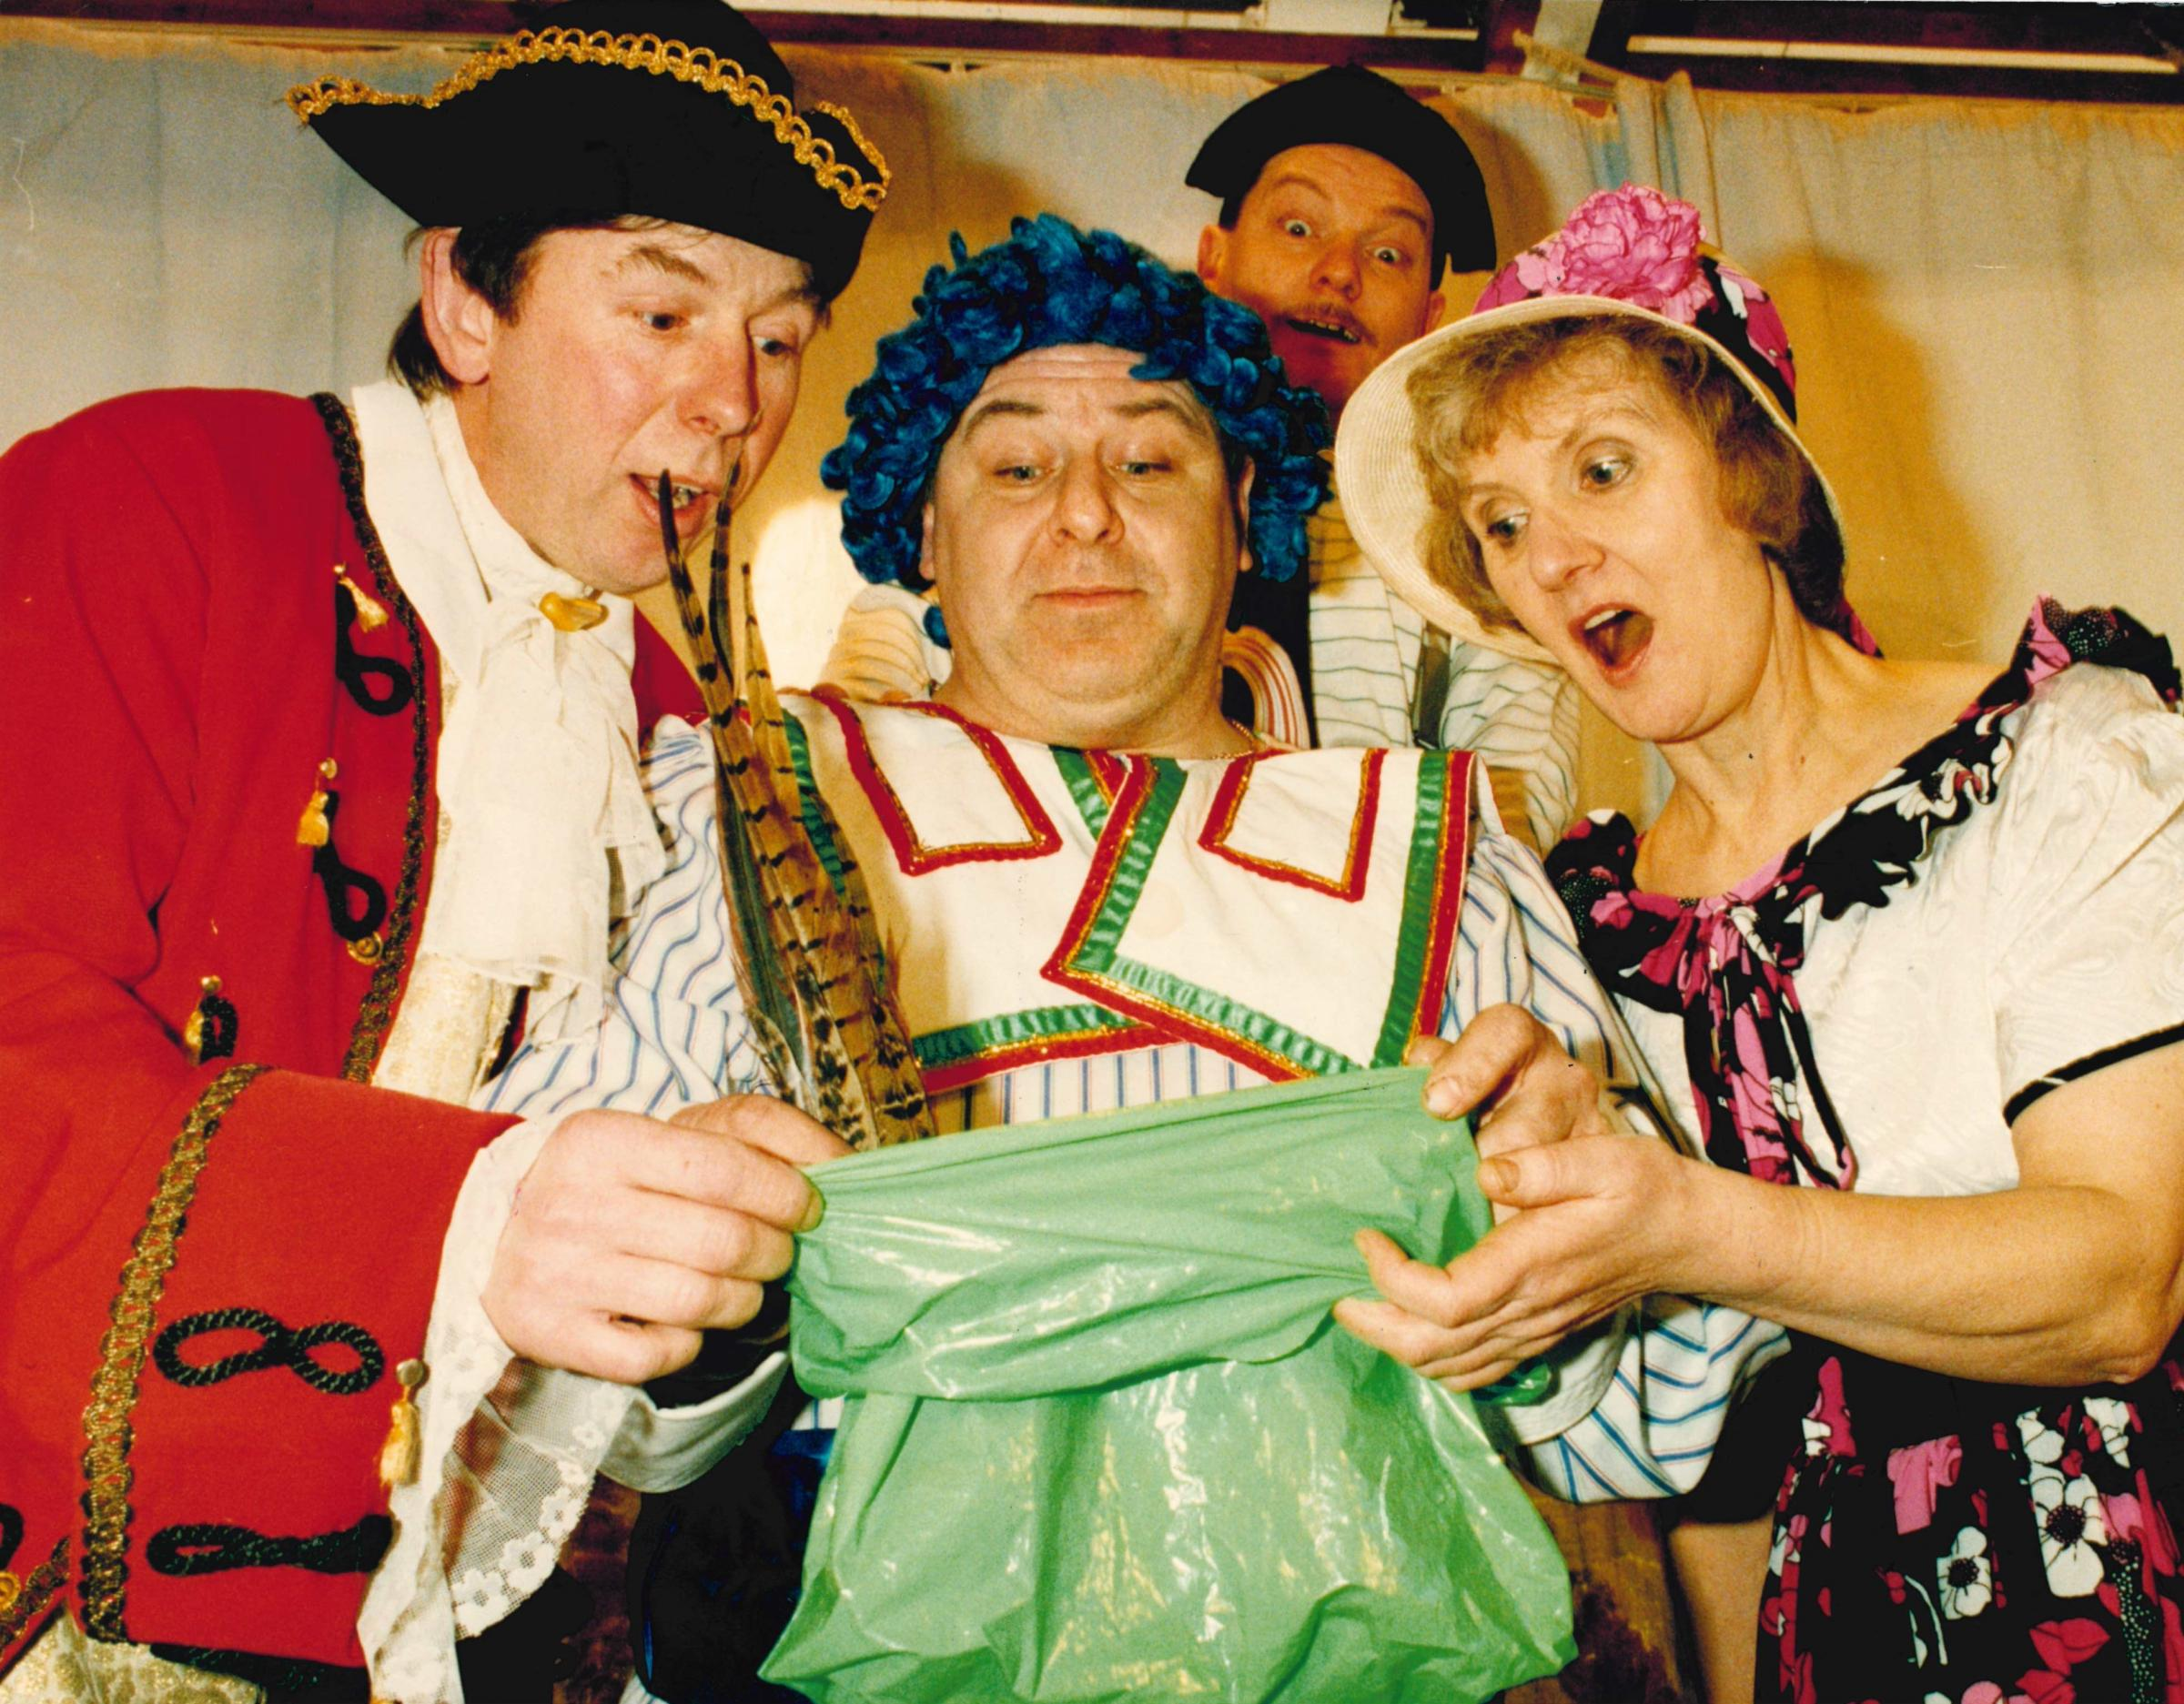 St Bedes Amateur Dramatic Society production of Puss in Boots, with Colin Gradwell, Glen Botham, Billy McGuiness and Julie Green. January 1994. Picture: Jon Savage